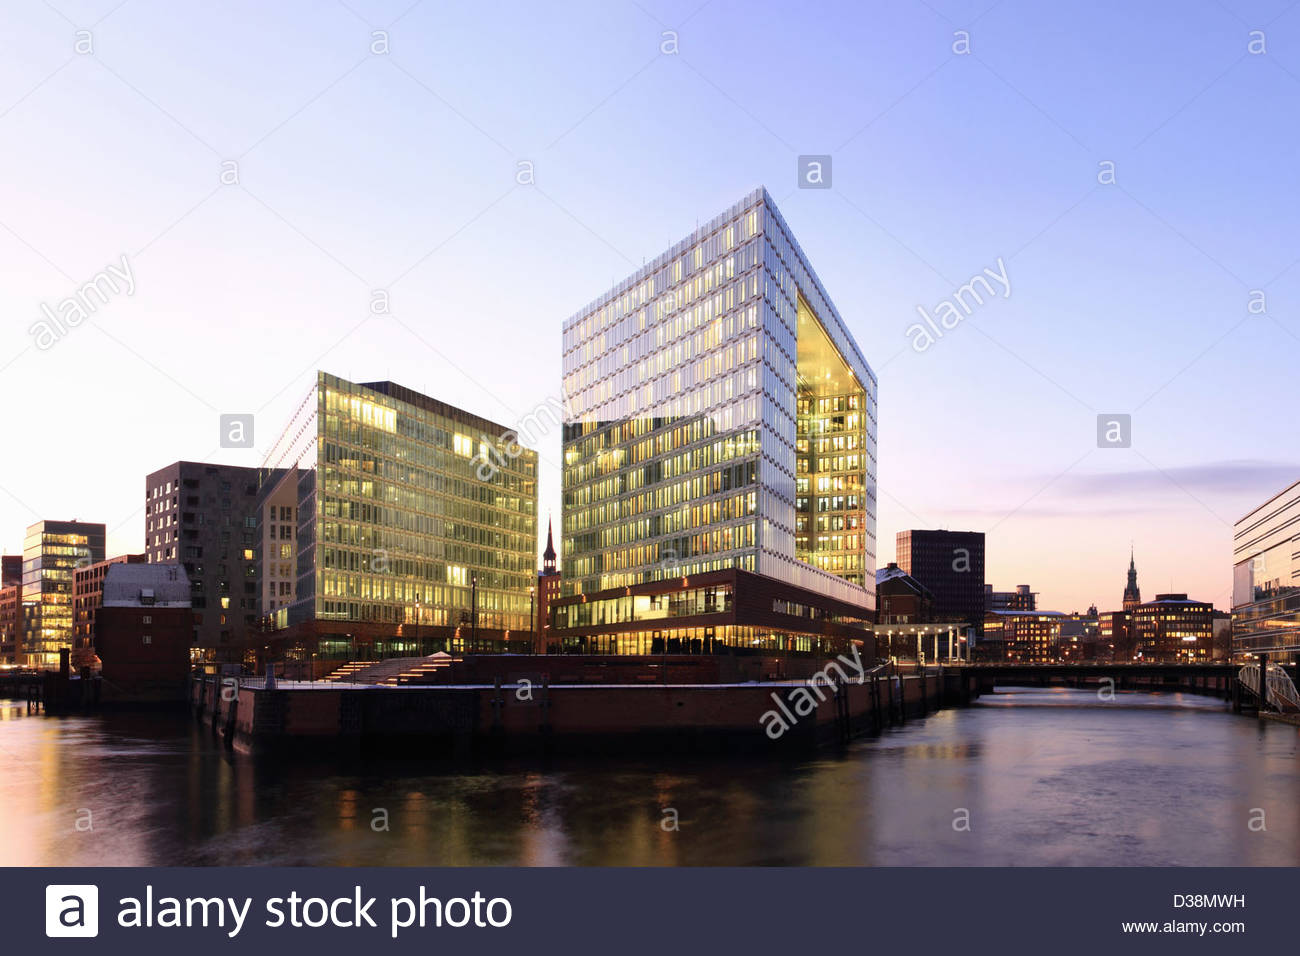 Urban buildings on waterfront - Stock Image